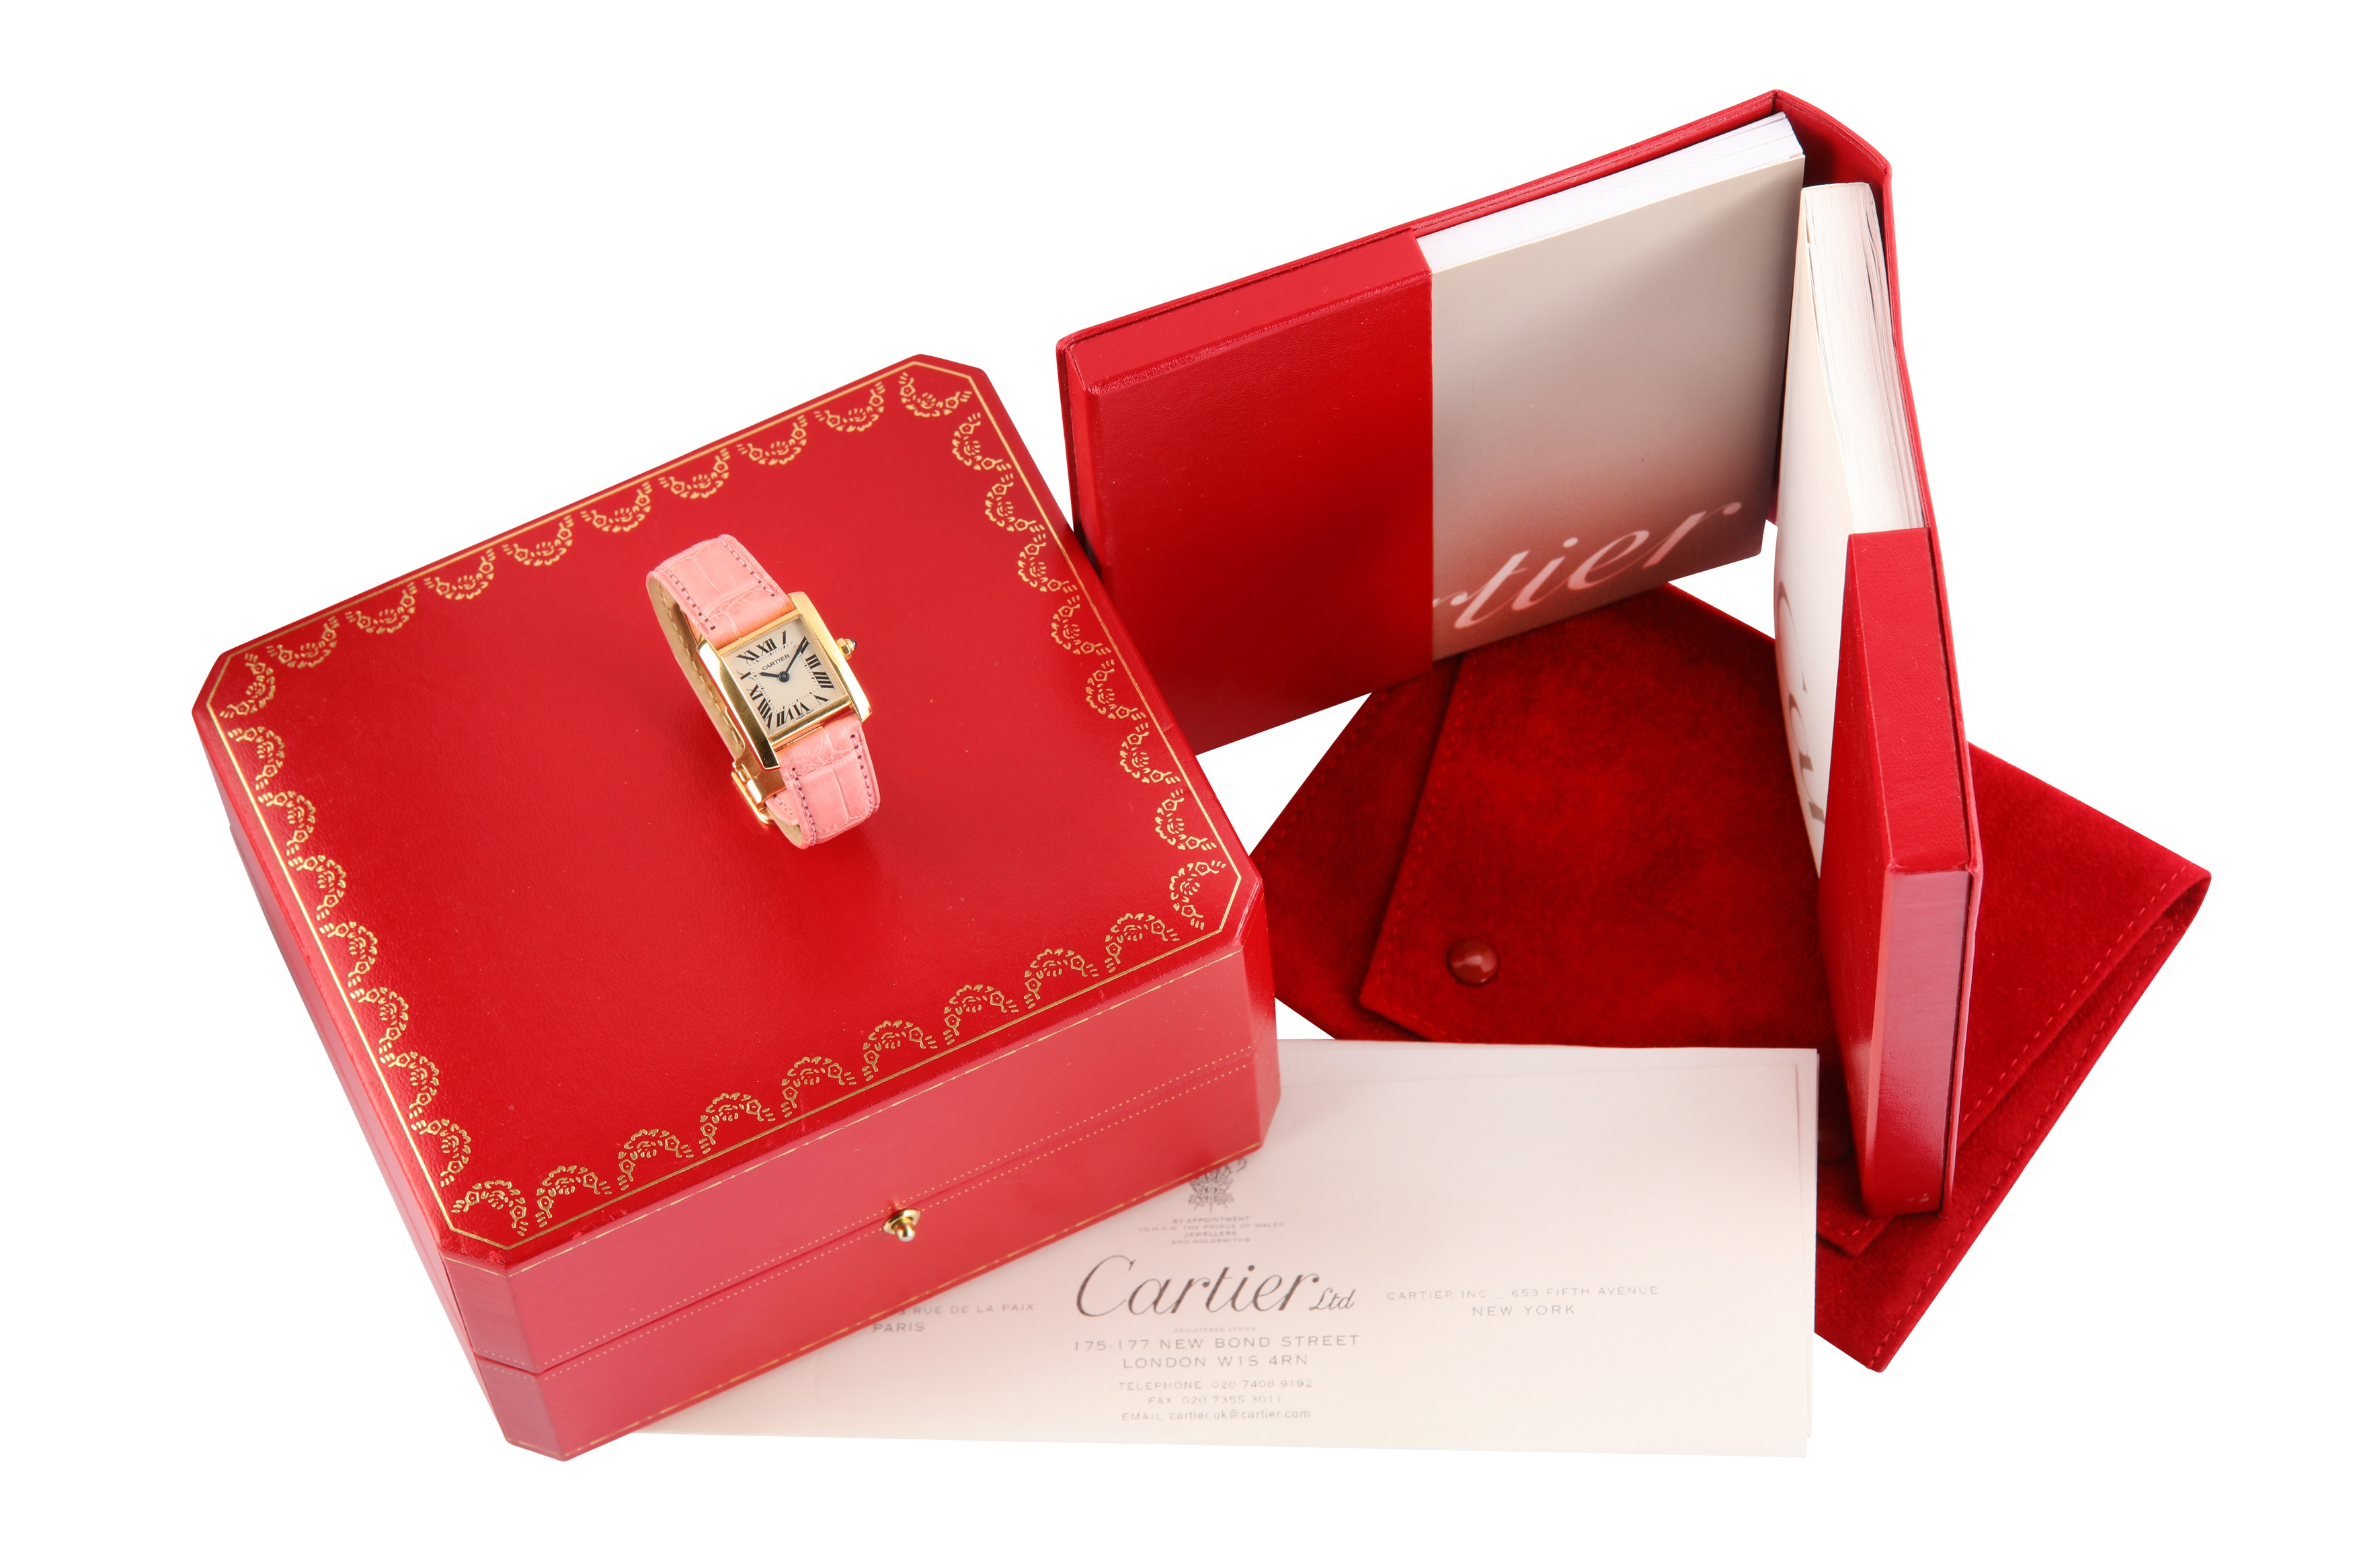 CARTIER. - Image 2 of 4